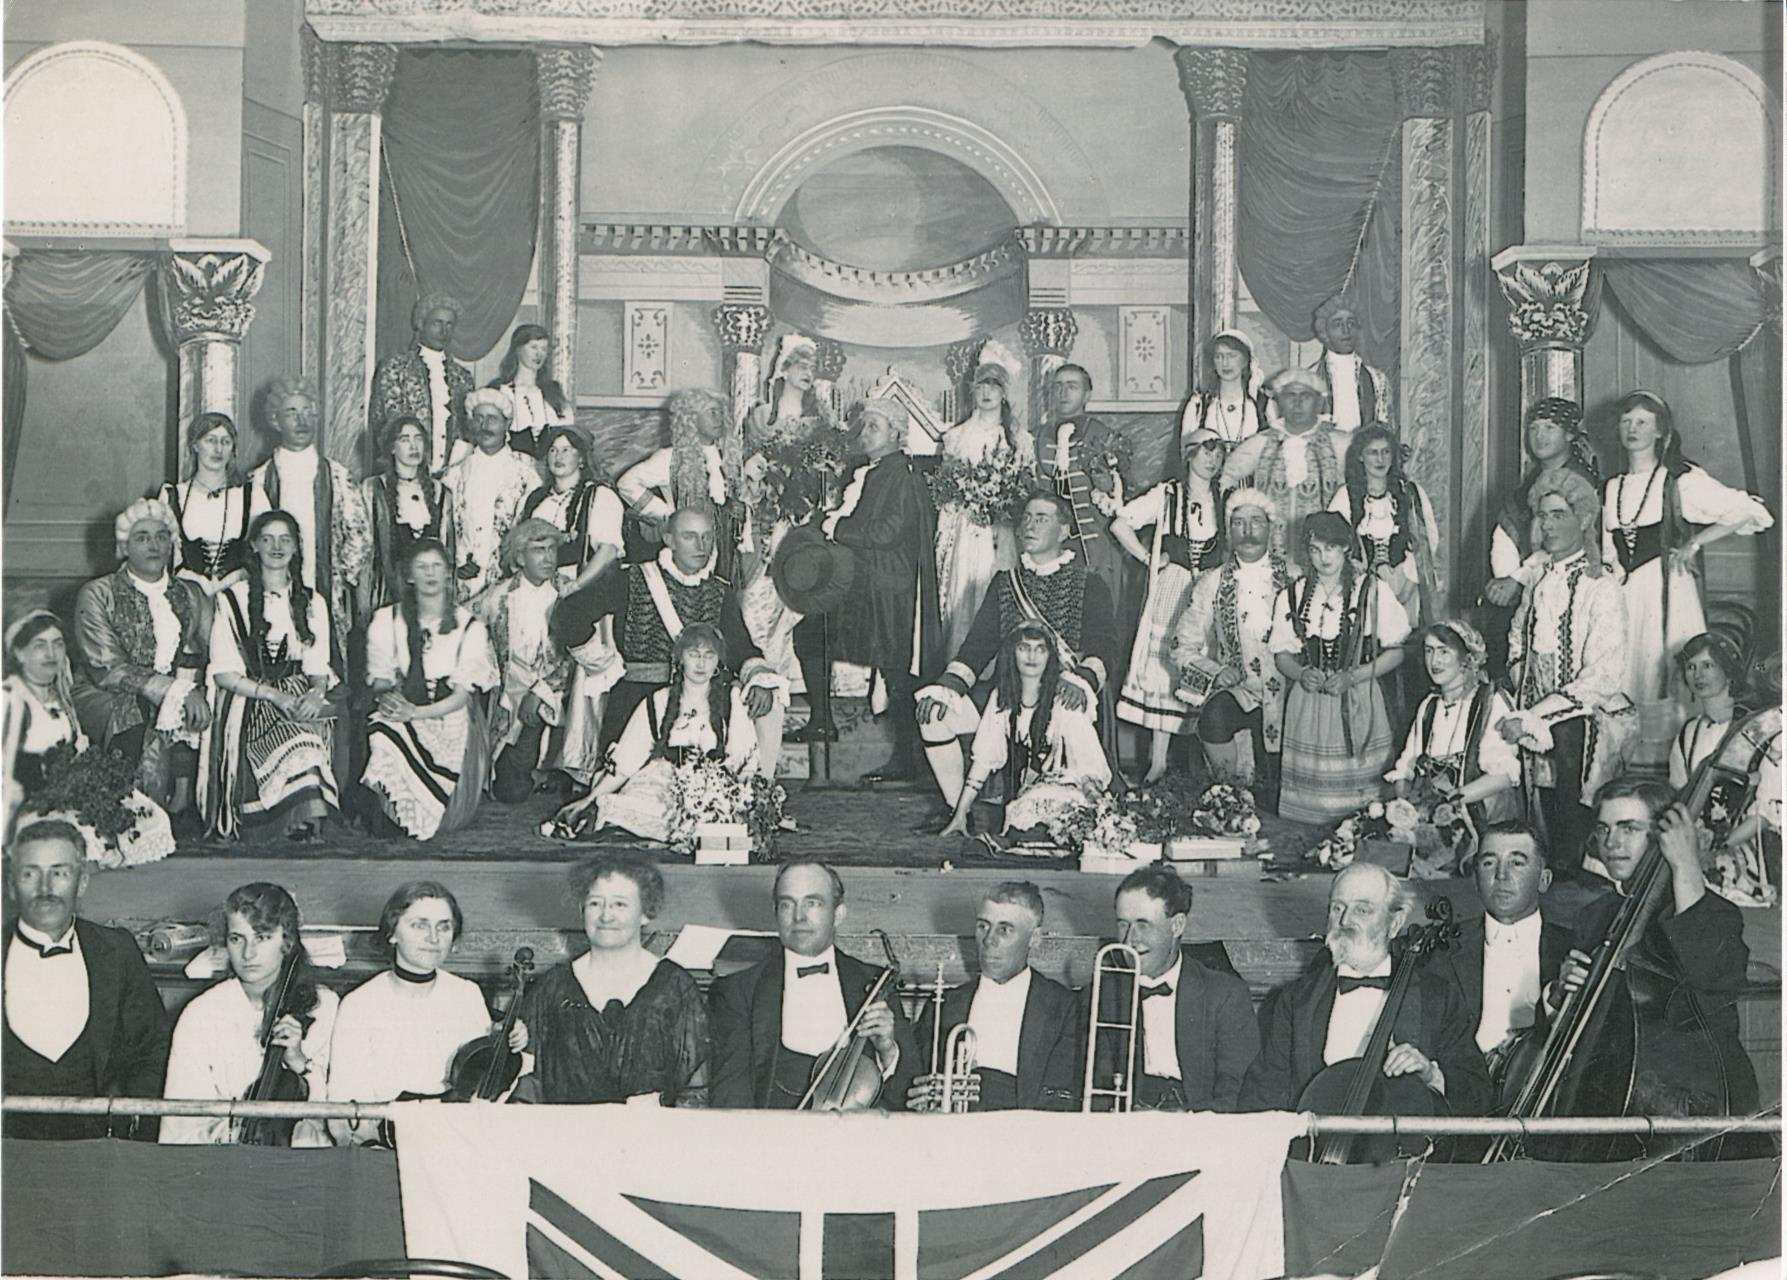 Albany Choral Society on stage at the Albany Town Hall [ca 1920]